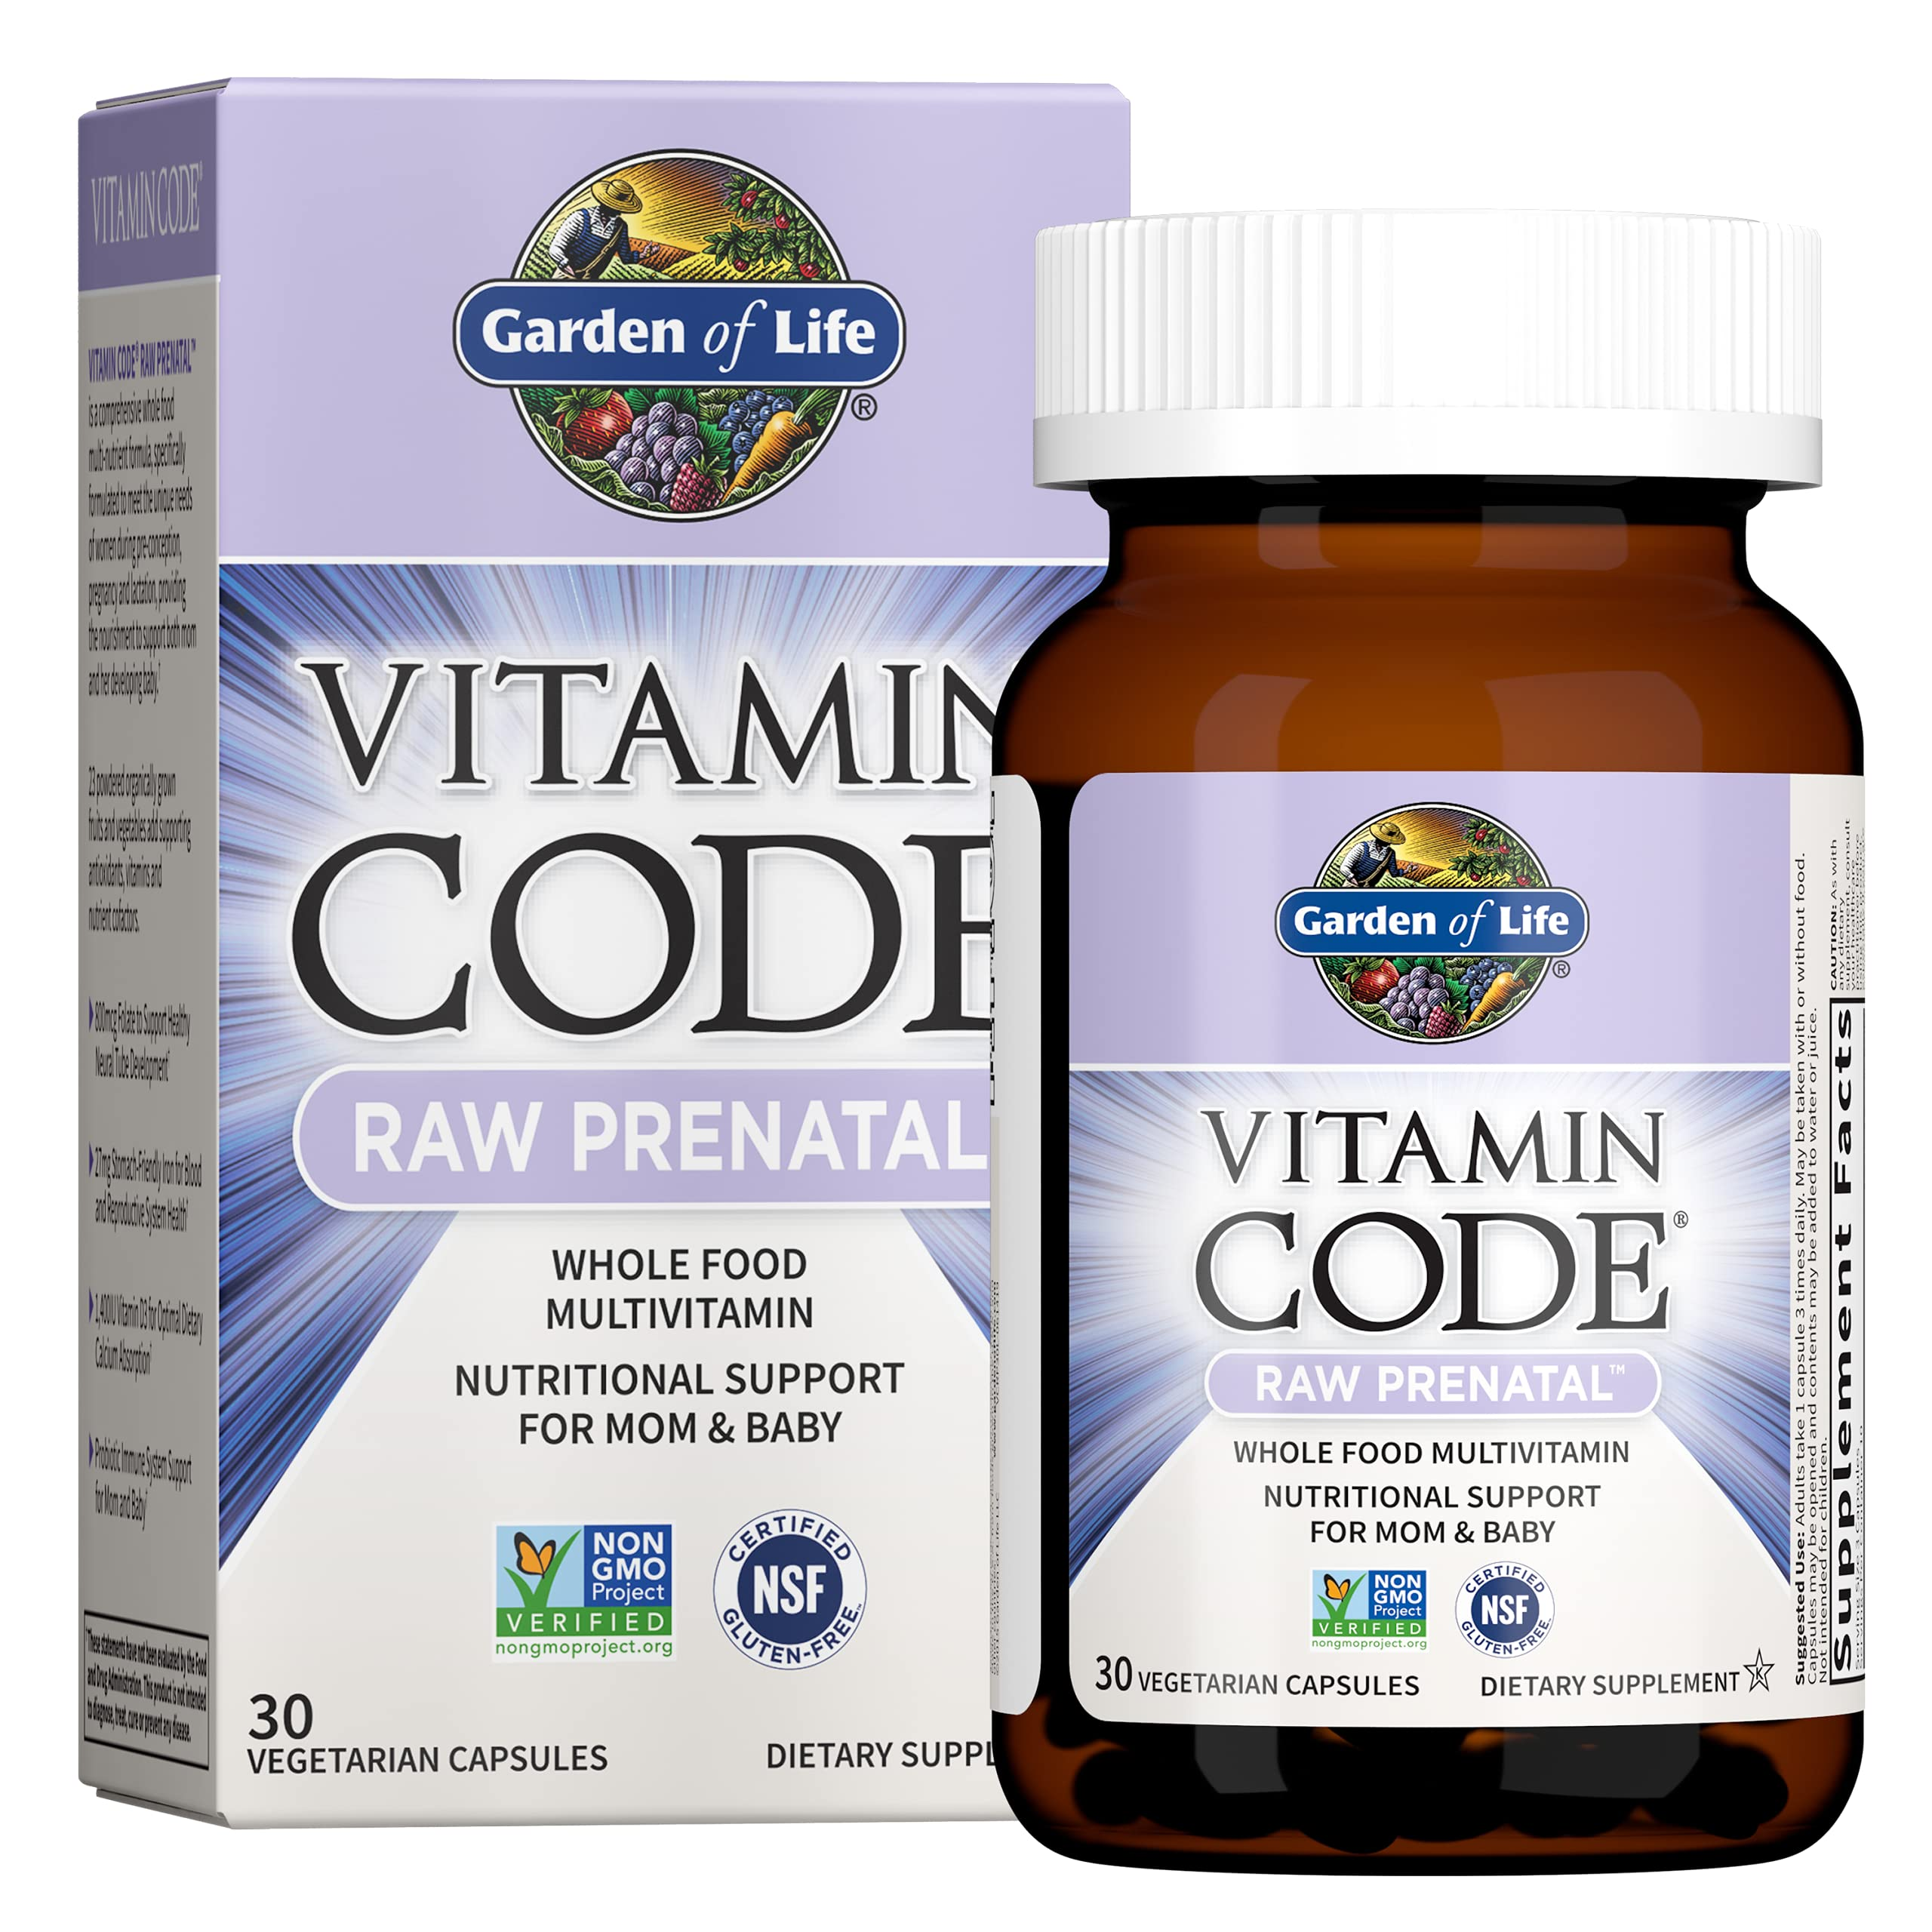 Garden of Life Vitamin Code Raw Prenatal Multivitamin, Whole Food Prenatal Vitamins with Iron, Folate not Folic Acid, Probiotics, Best Vegetarian Non-GMO Gluten Free Prenatals for Women, 180 Capsules